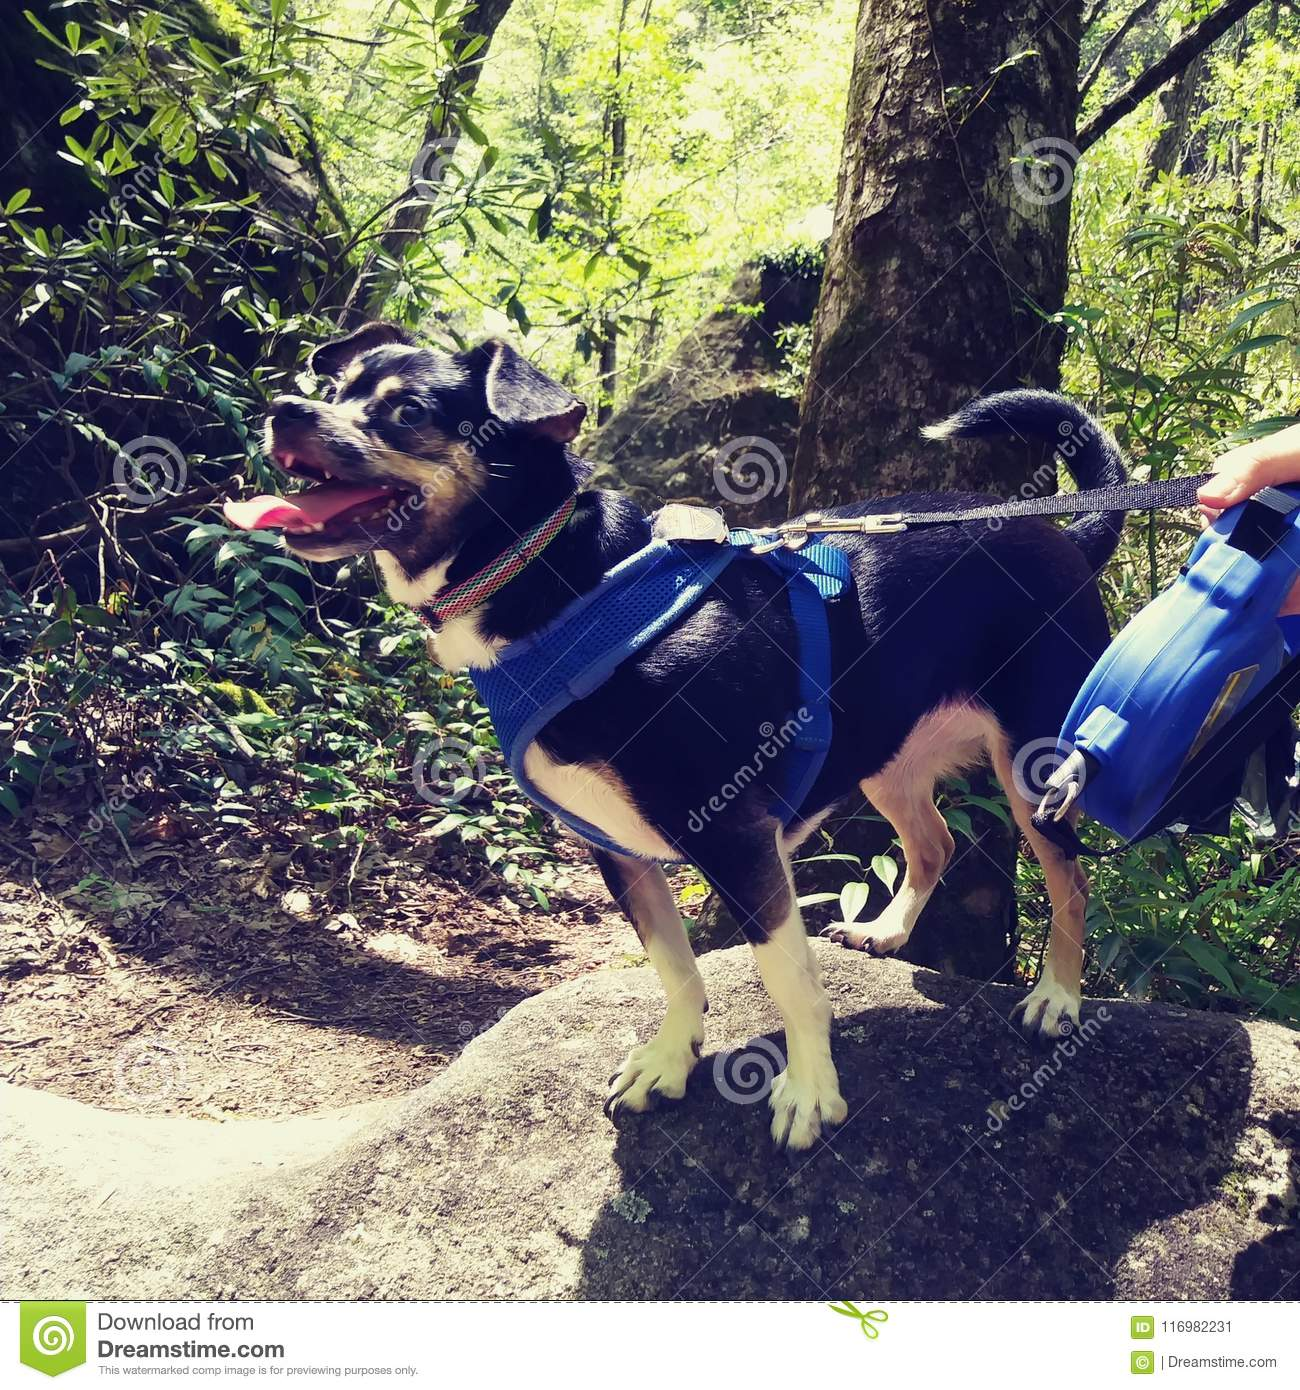 Dog puppy Chihuahua brack tongue sticking out happy on rock climbing mountain